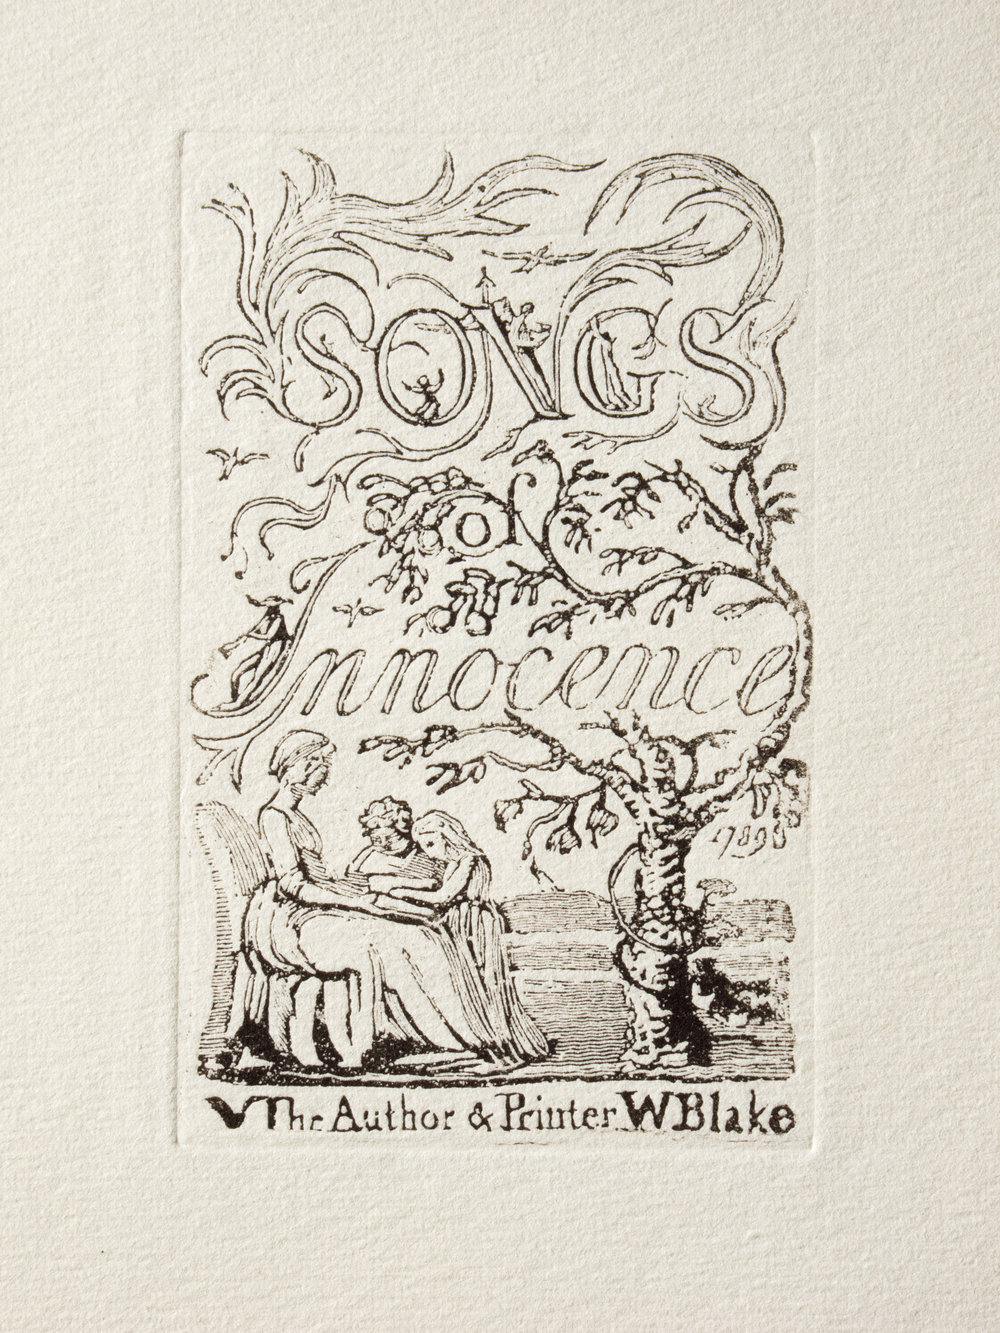 Title+Page+from+Songs+of+Innocence+by+William+Blake.jpg